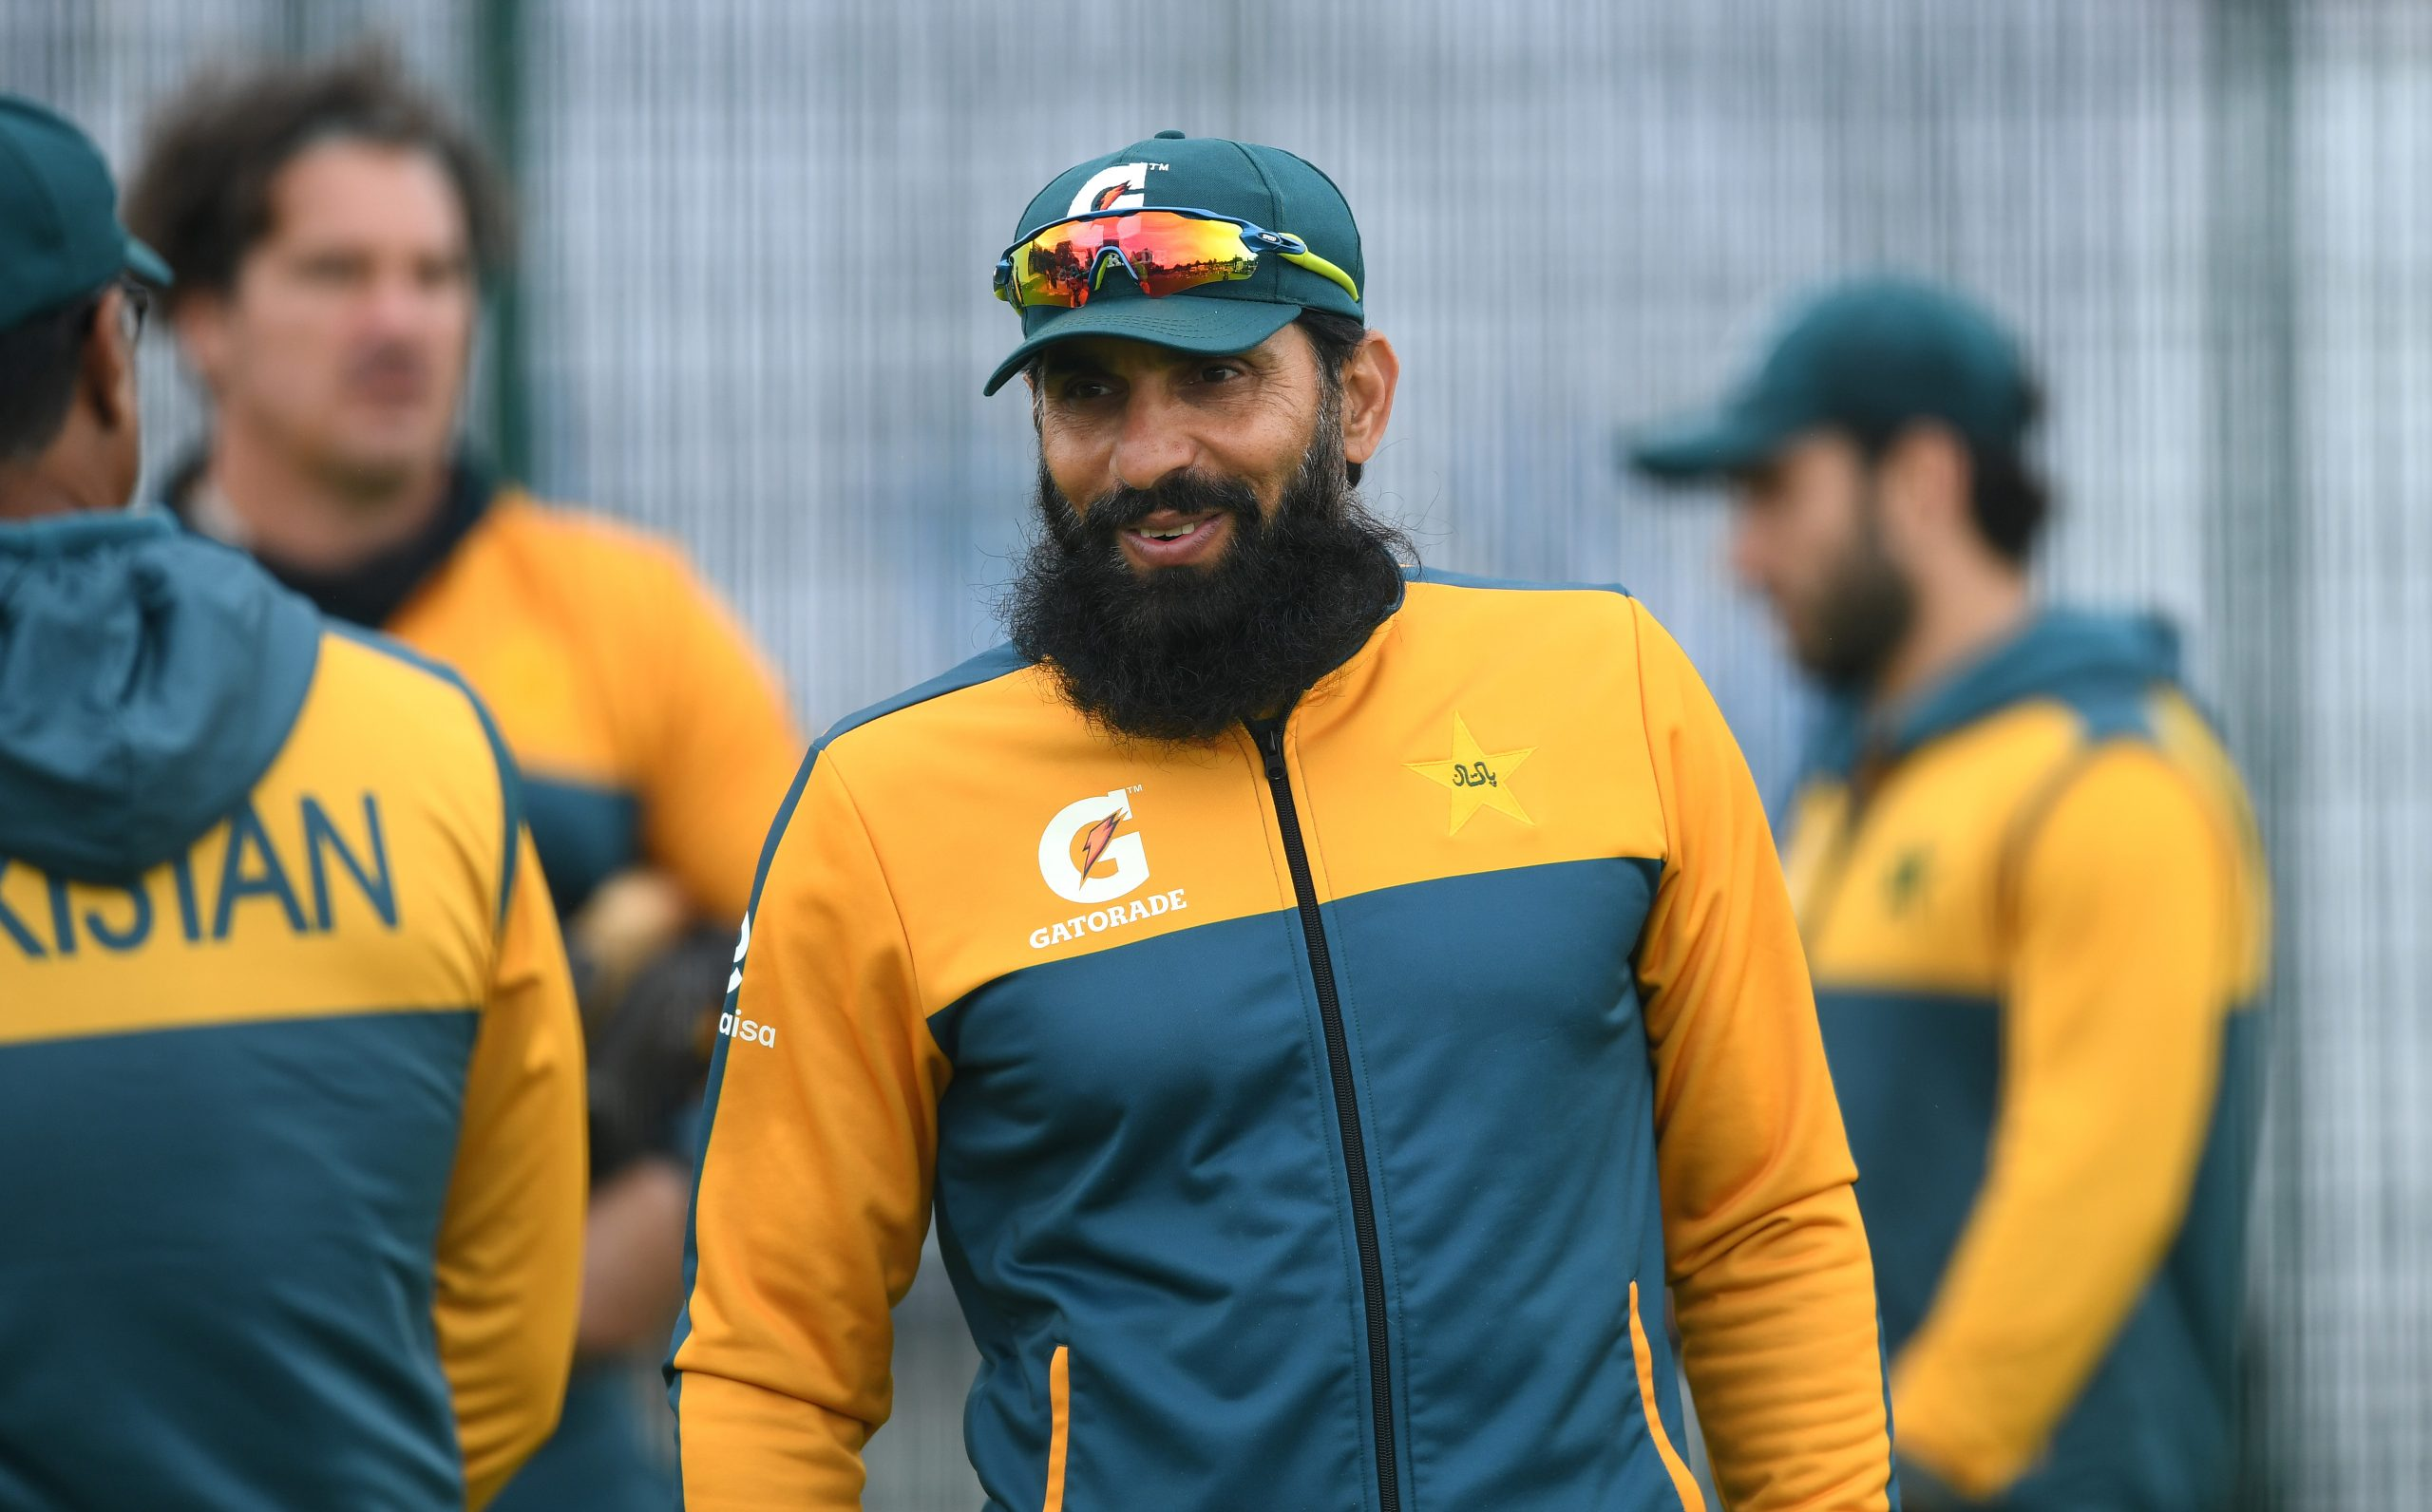 Pakistan Head Coach Misbah-ul-Haq looks on during a Pakistan Nets Session at Emirates Old Trafford on August 03, 2020 in Manchester, England. (Photo by Gareth Copley/Getty Images)